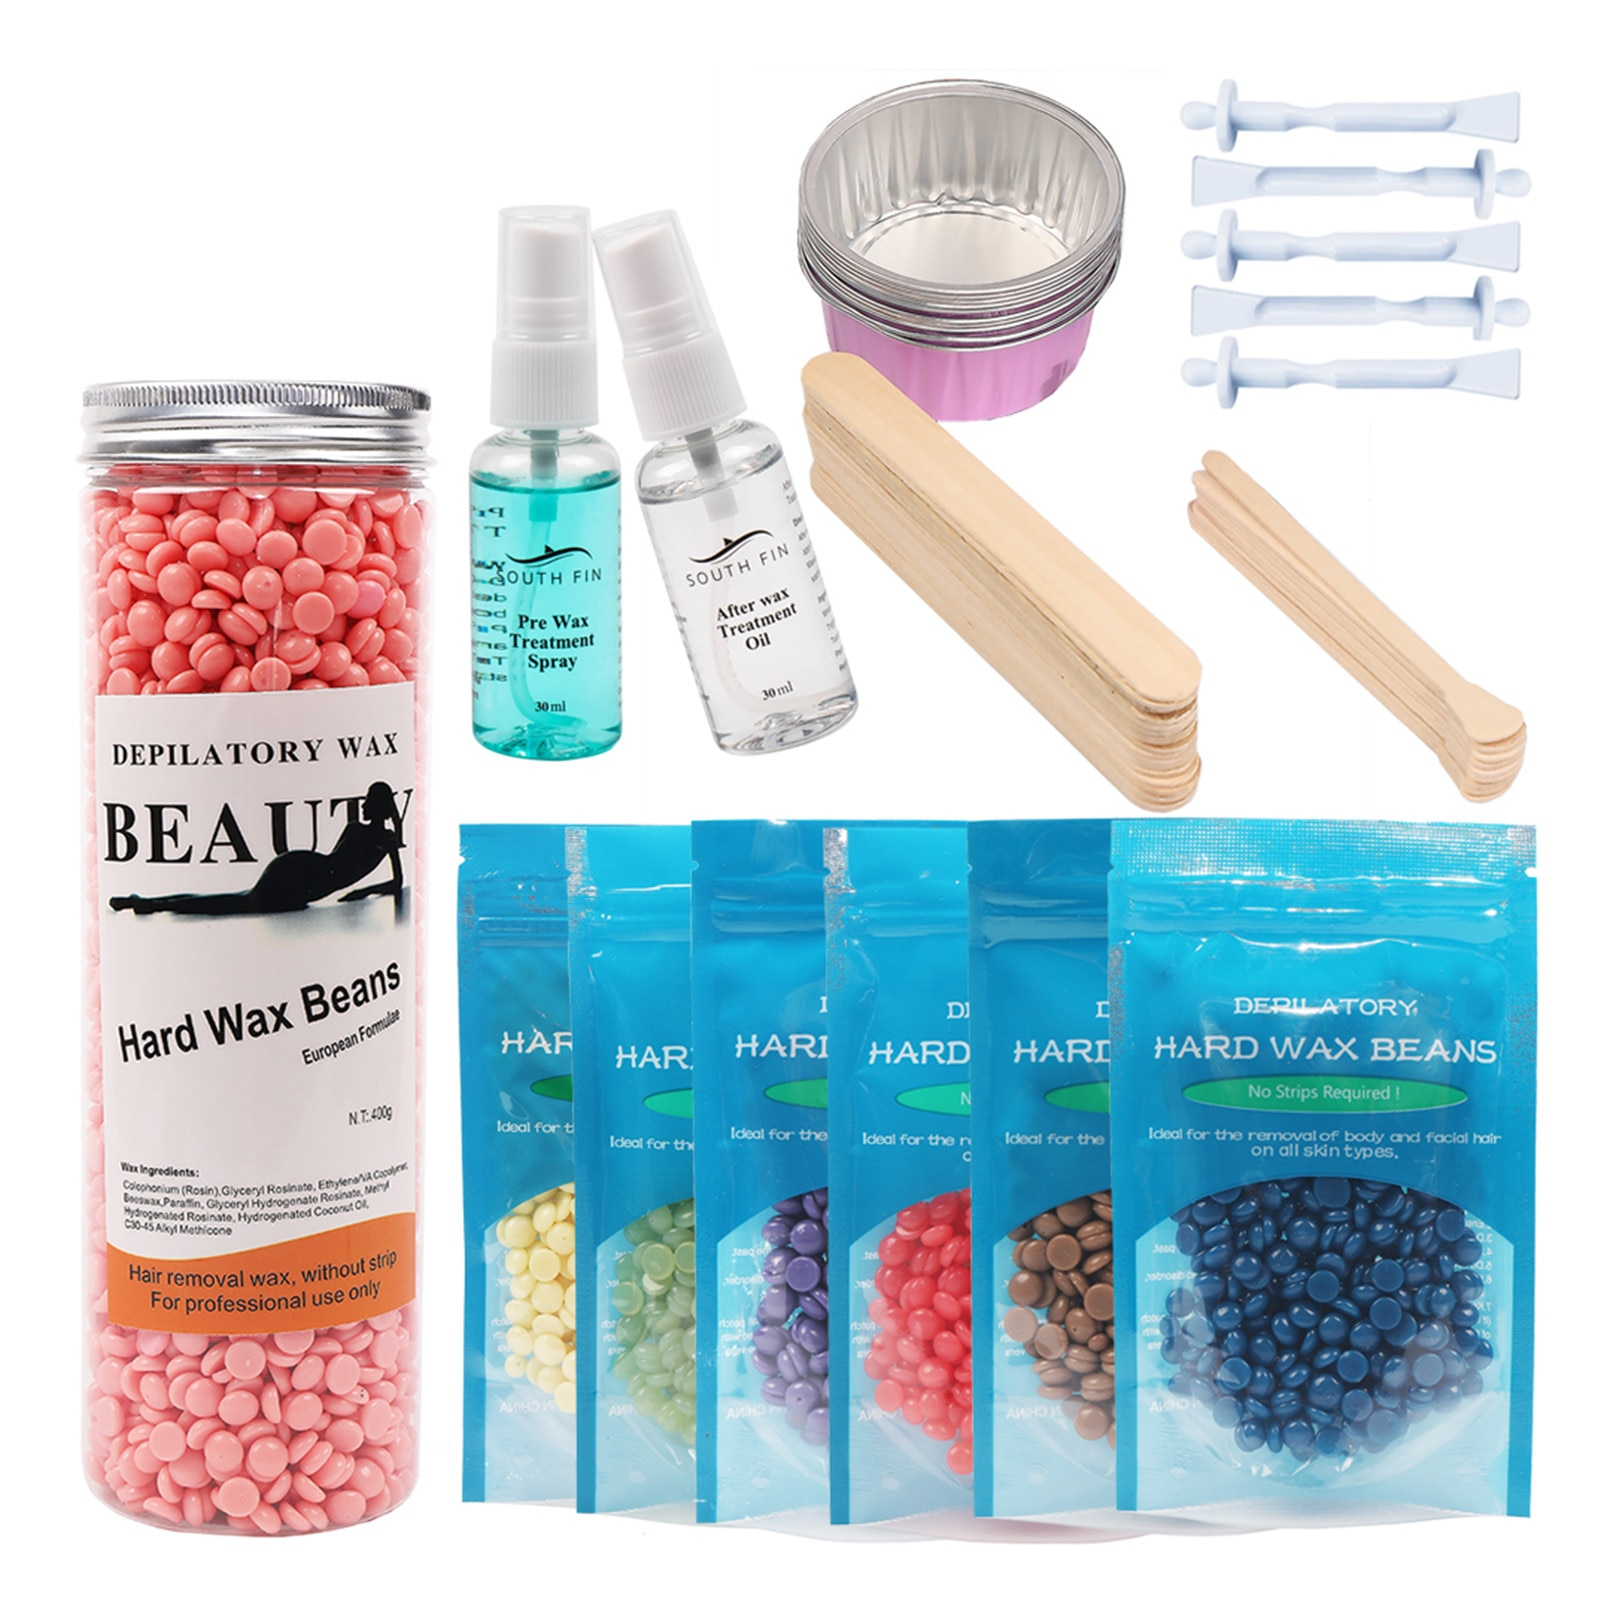 6 Flavors Depilatory Wax Beans Solid Hard Wax Beans Unisex Armpit Arm Legs Epilation Private Hair Removal Facial Whole Body